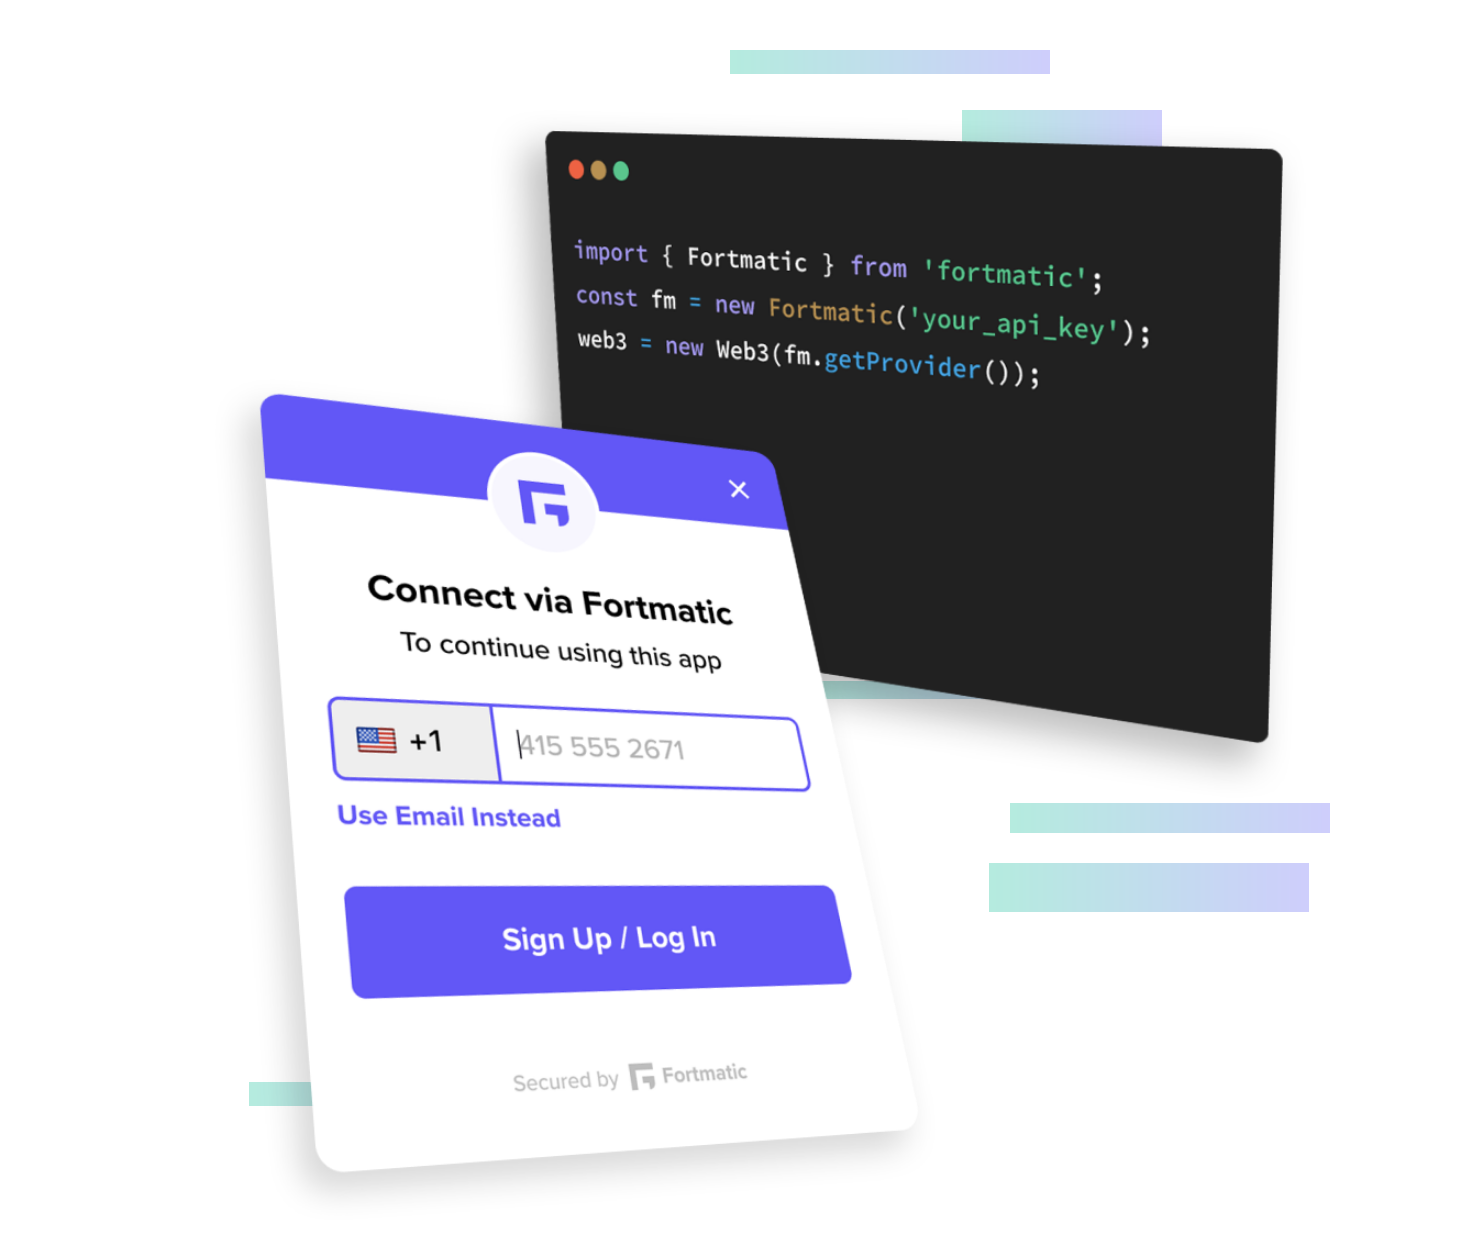 Fortmatic lets you sign into dapps